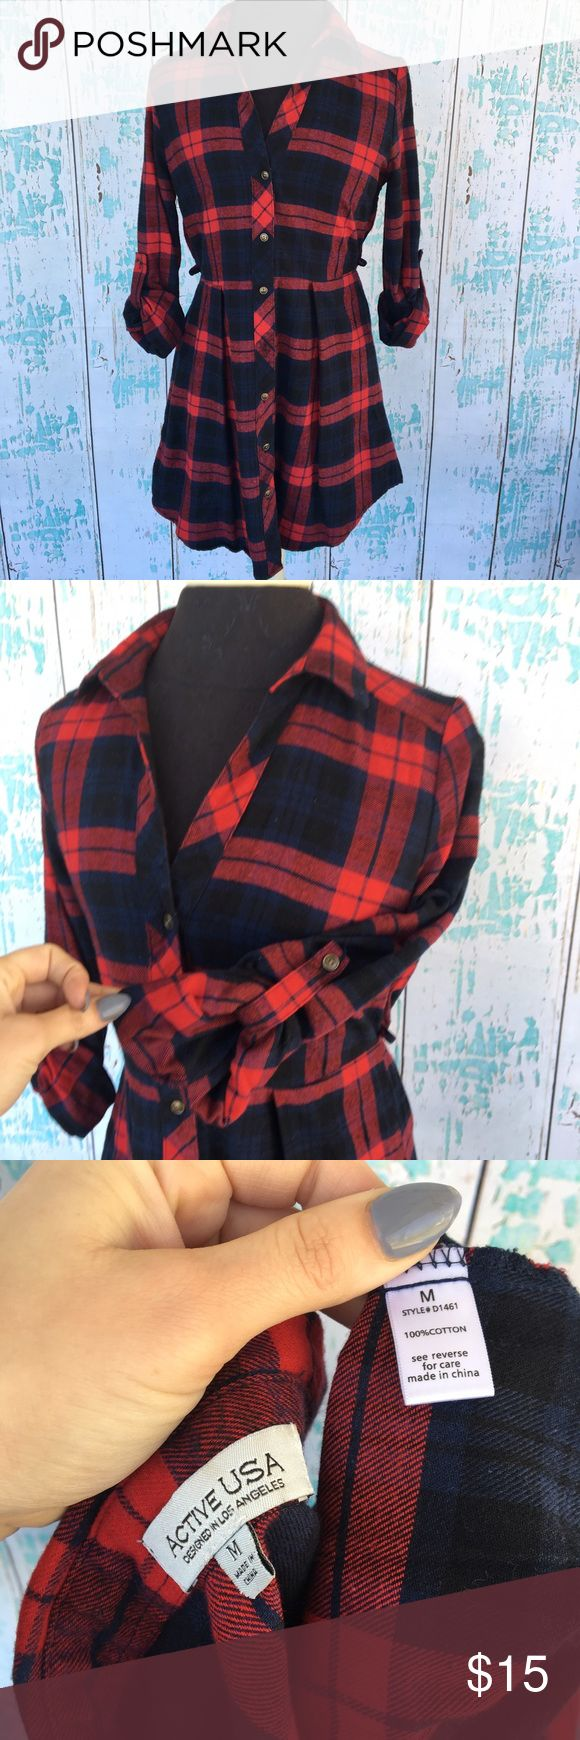 Active USA red flannel tunic dress size medium Active USA red flannel tunic dress size medium. Missing the brown belt that came with but can use another or cut off the side loops. Active USA Dresses Mini